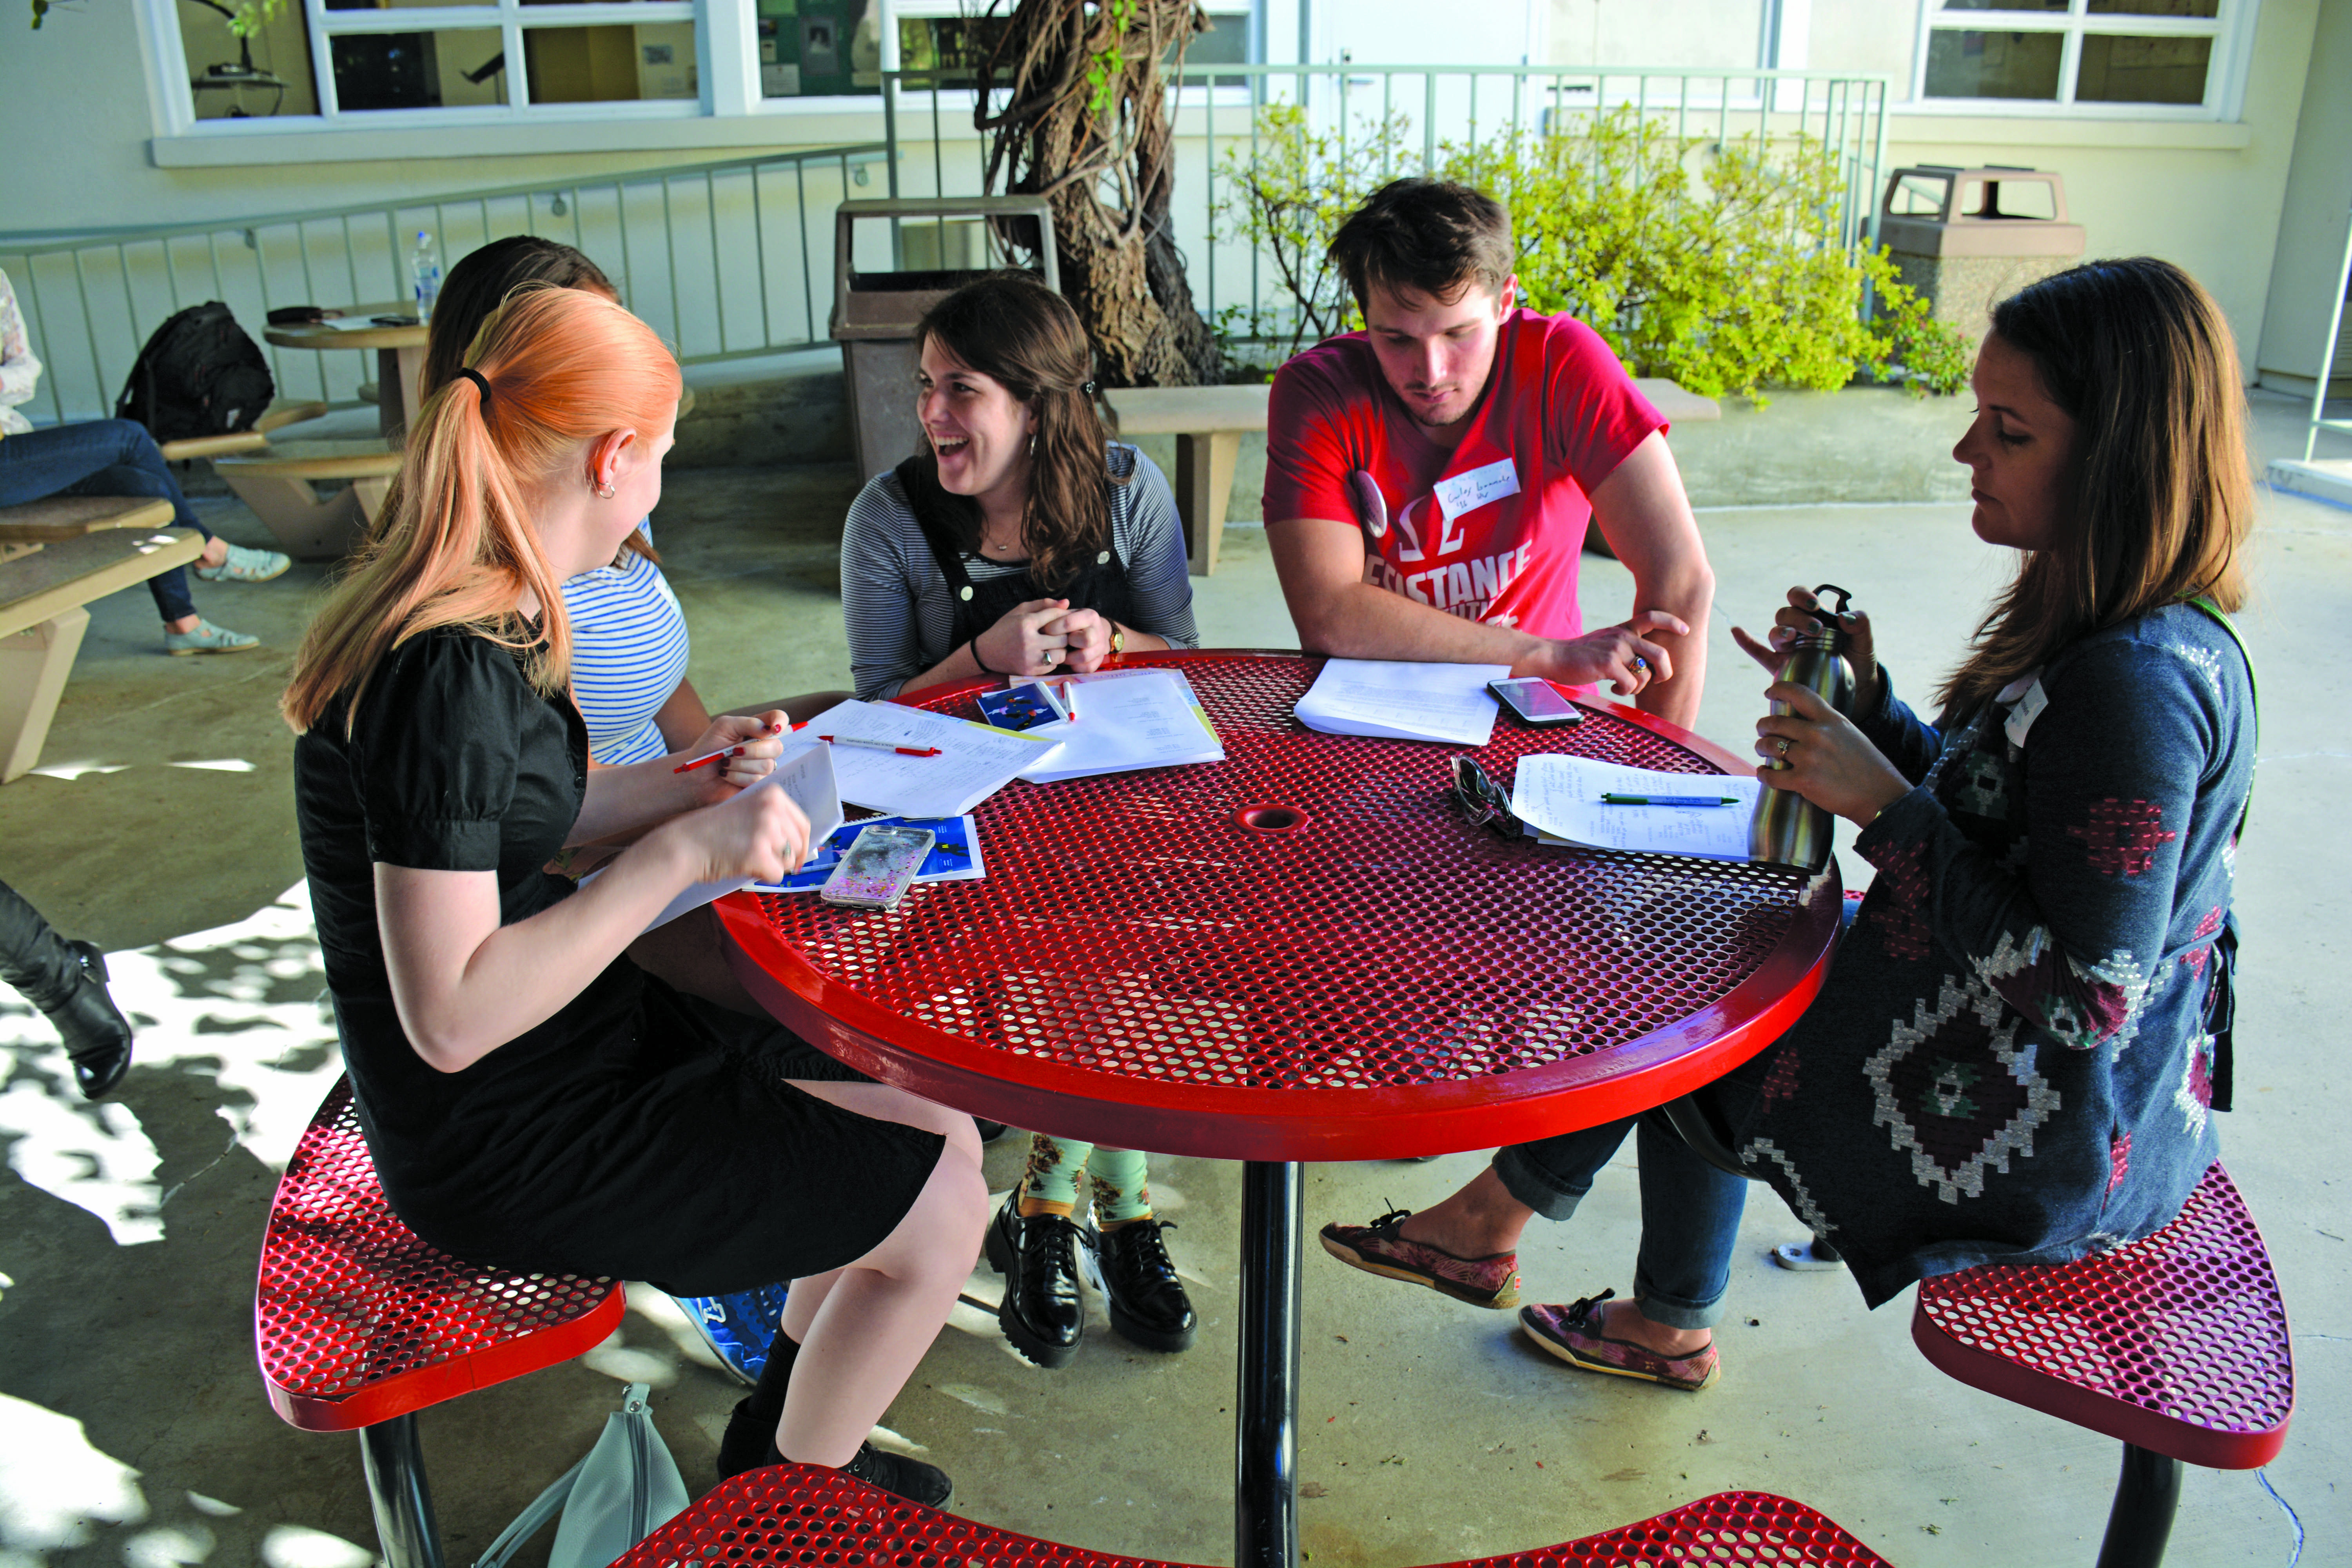 CREATIVE PROCESS: Students brainstorm with each other just outside of Rugby. Credit: Teresa Suh/Chronicle